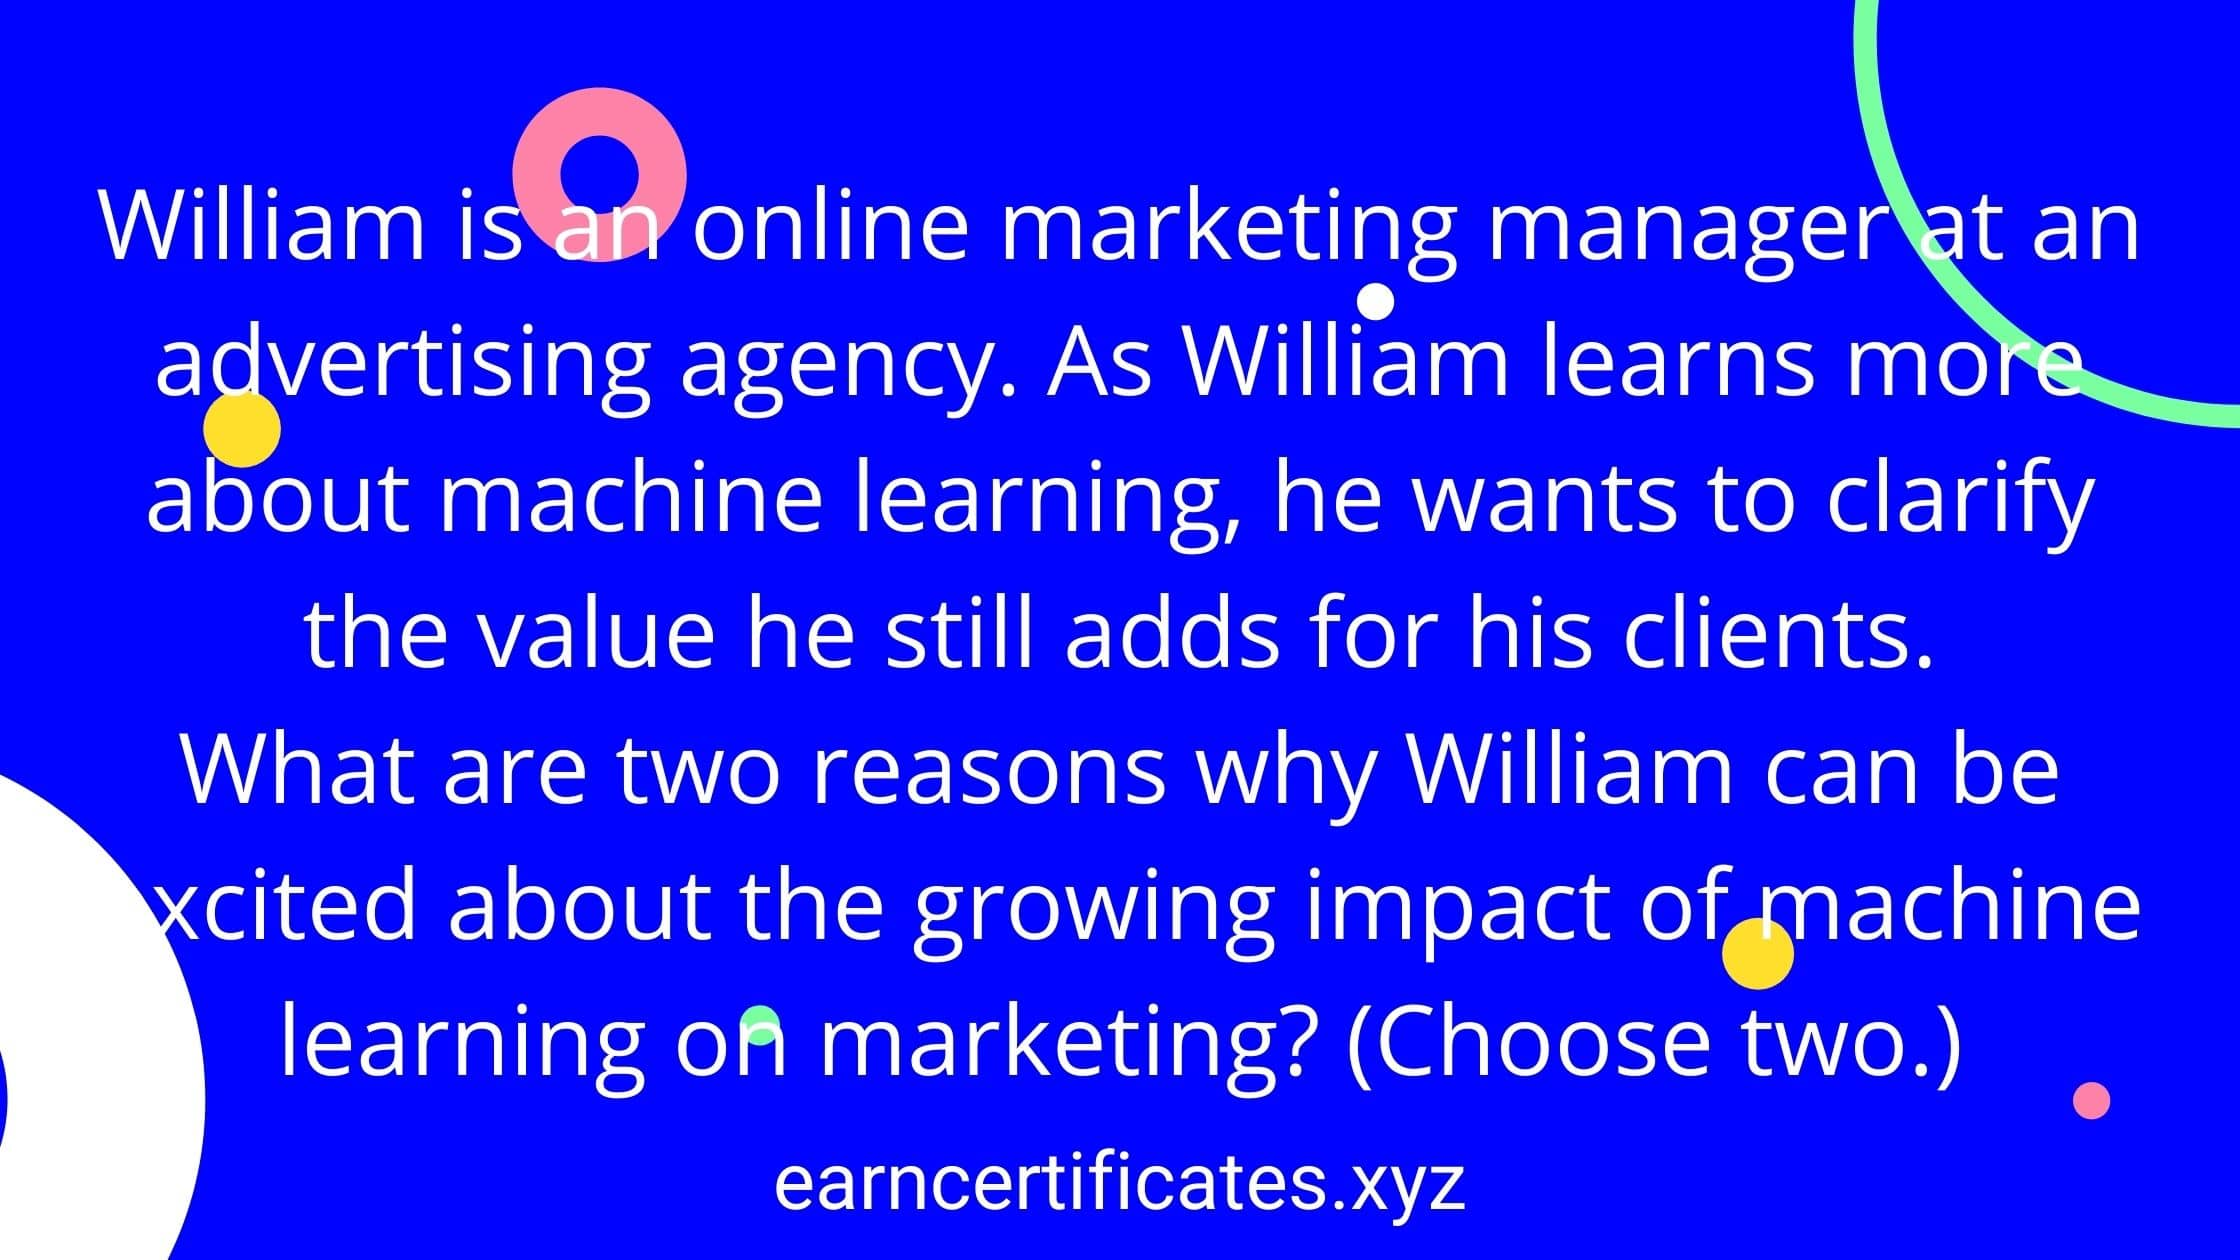 William is an online marketing manager at an advertising agency. As William learns more about machine learning, he wants to clarify the value he still adds for his clients. What are two reasons why William can be excited about the growing impact of machine learning on marketing? (Choose two.)